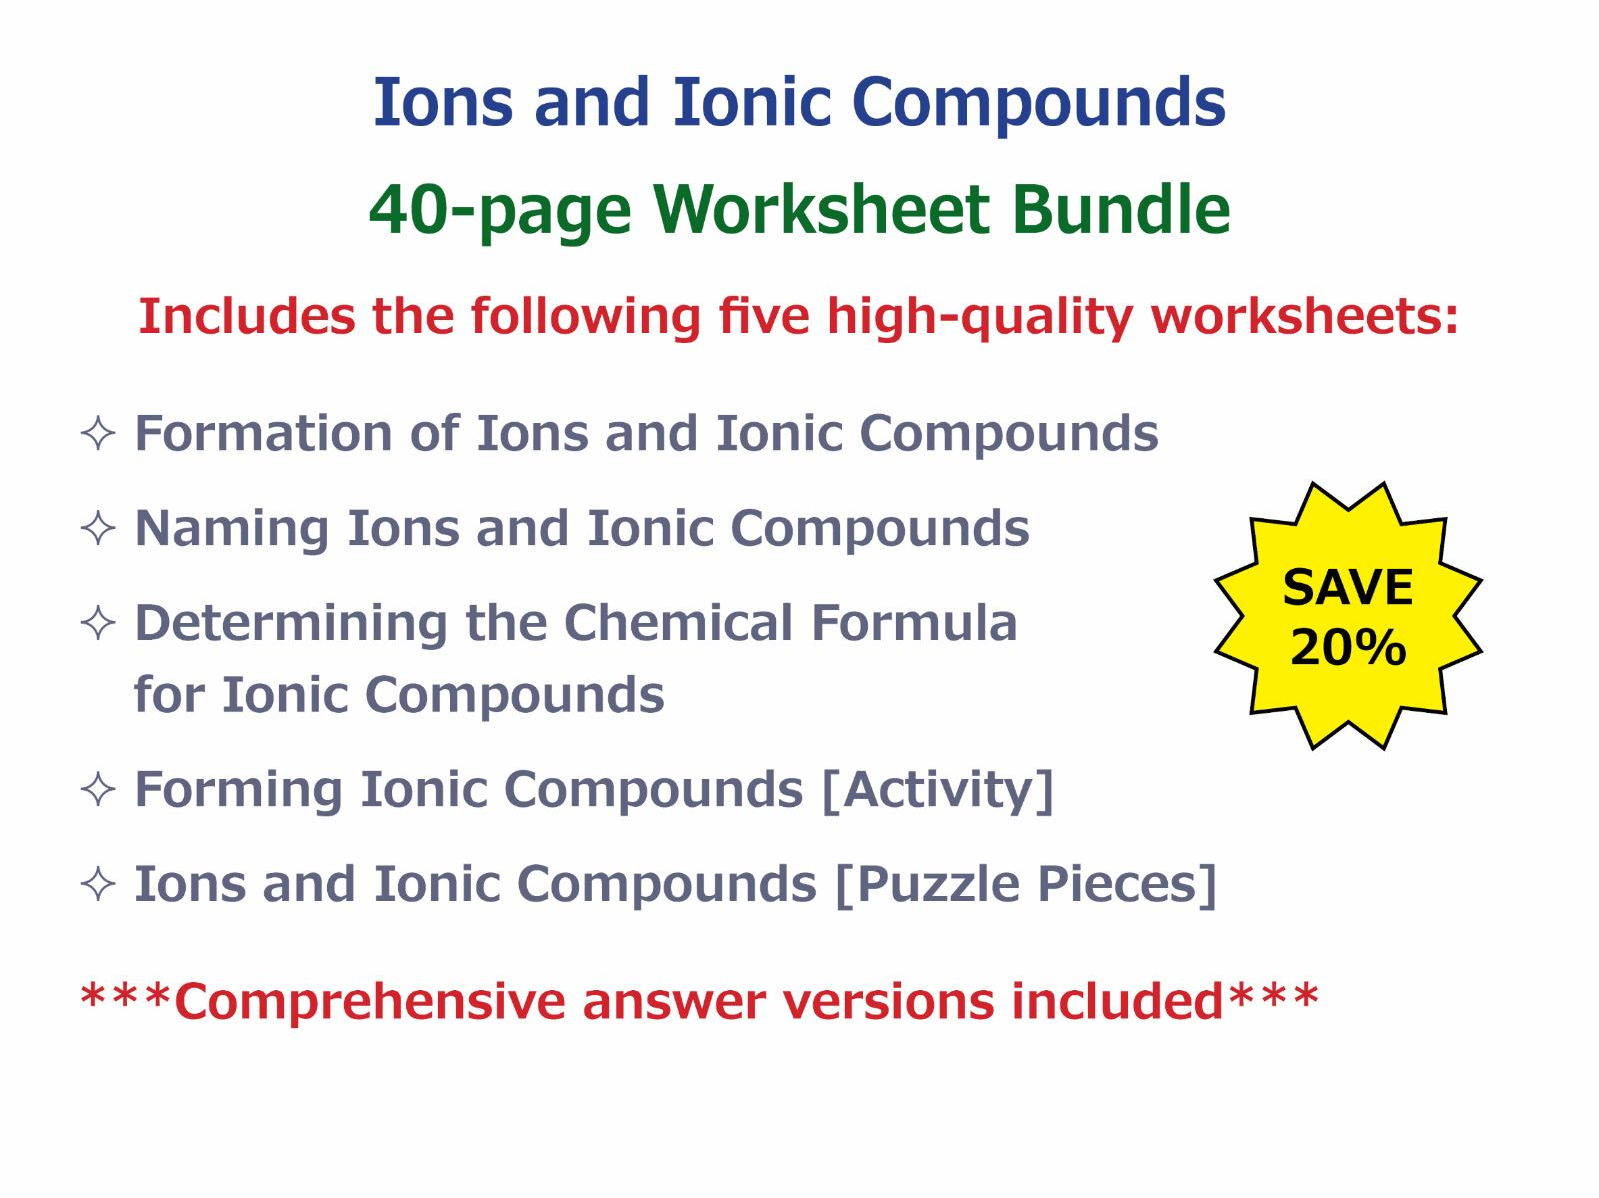 Formation of ions and ionic compounds worksheet by ions and ionic compounds worksheet bundle urtaz Image collections